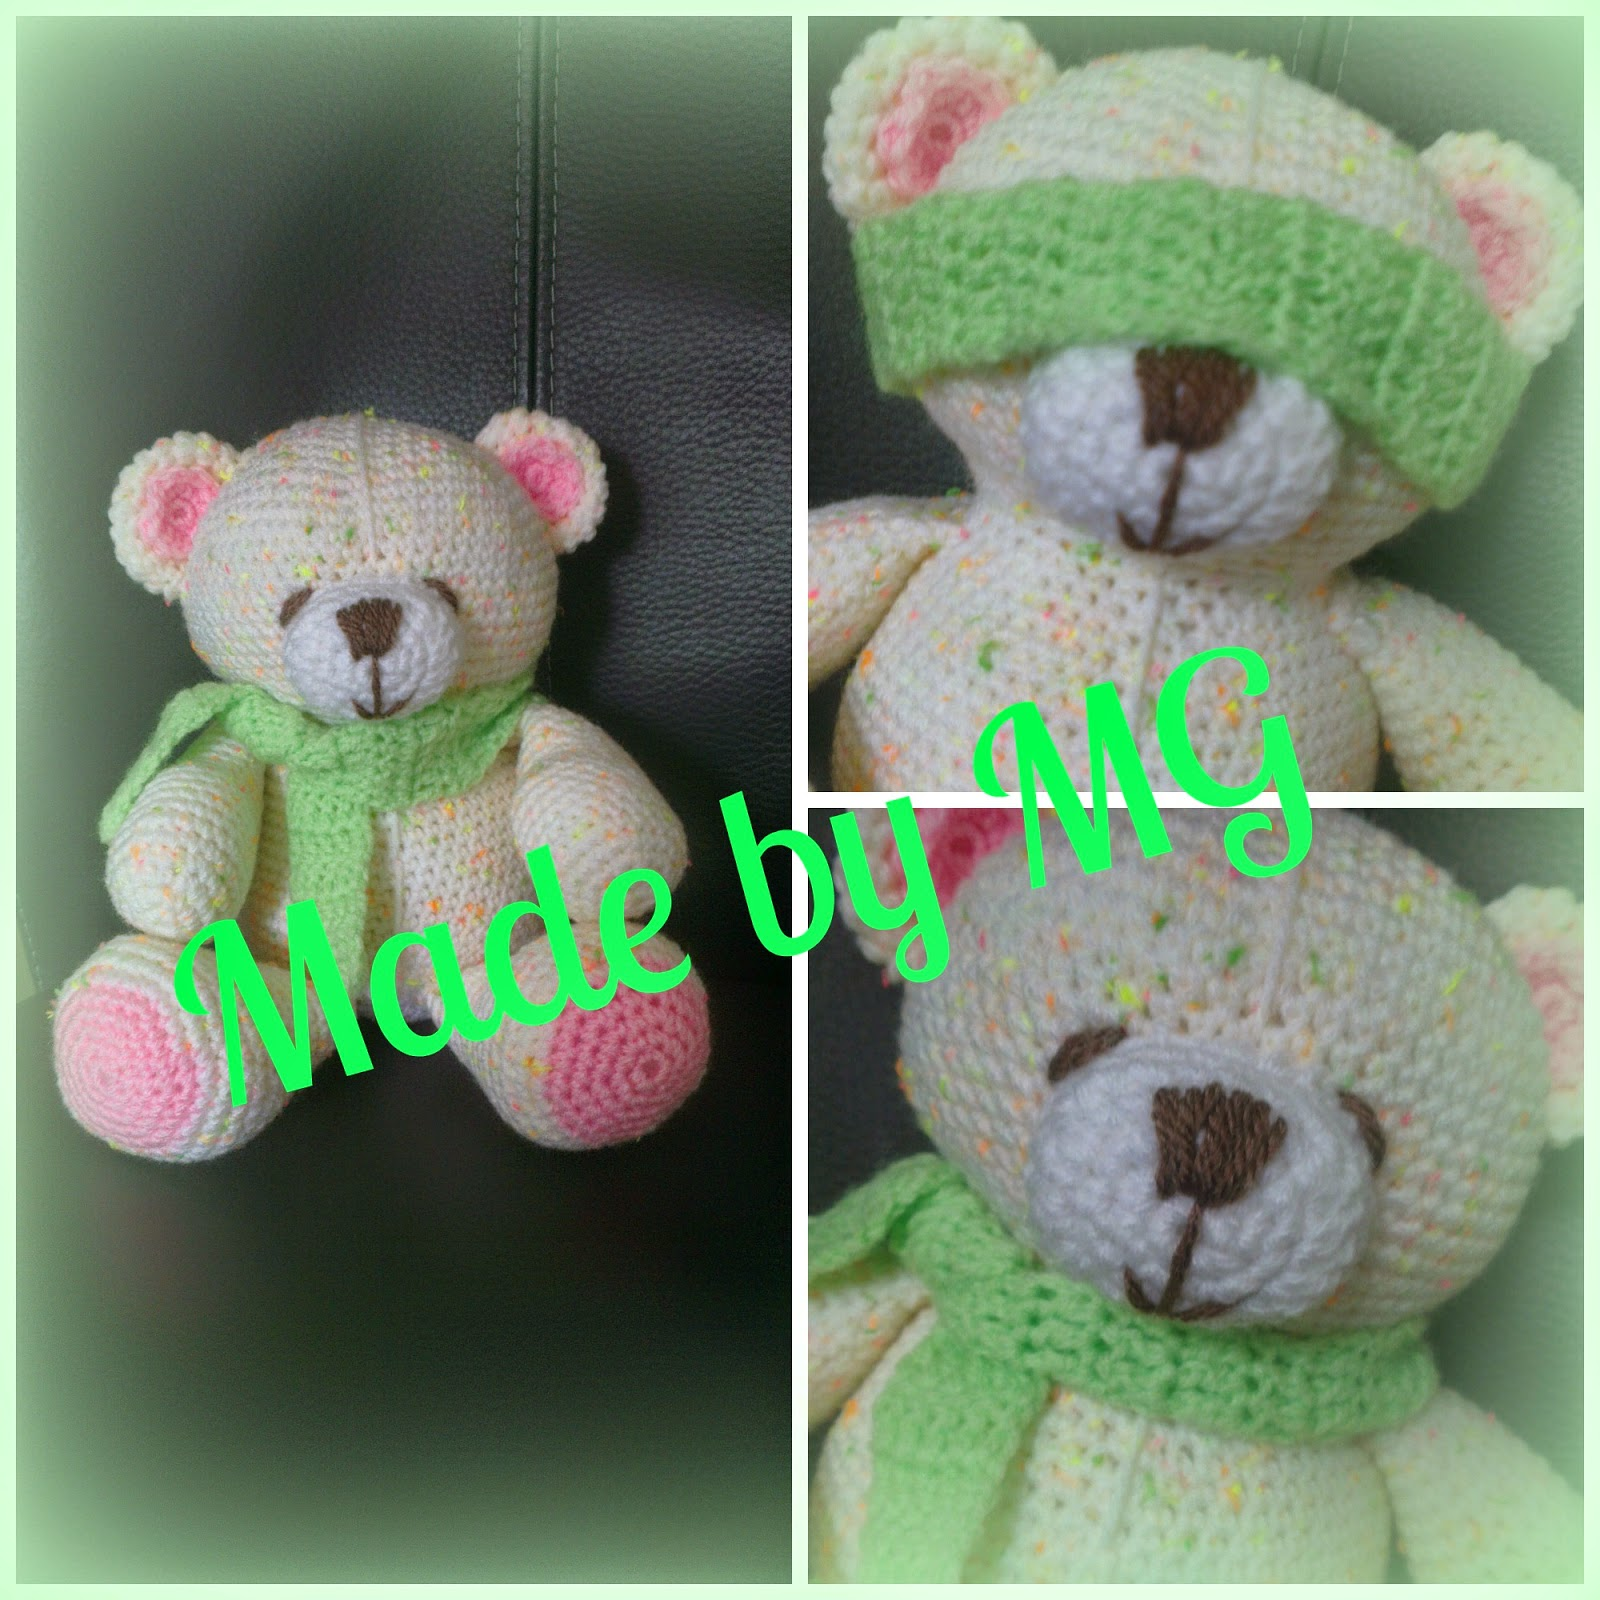 Made By Mg September 2014